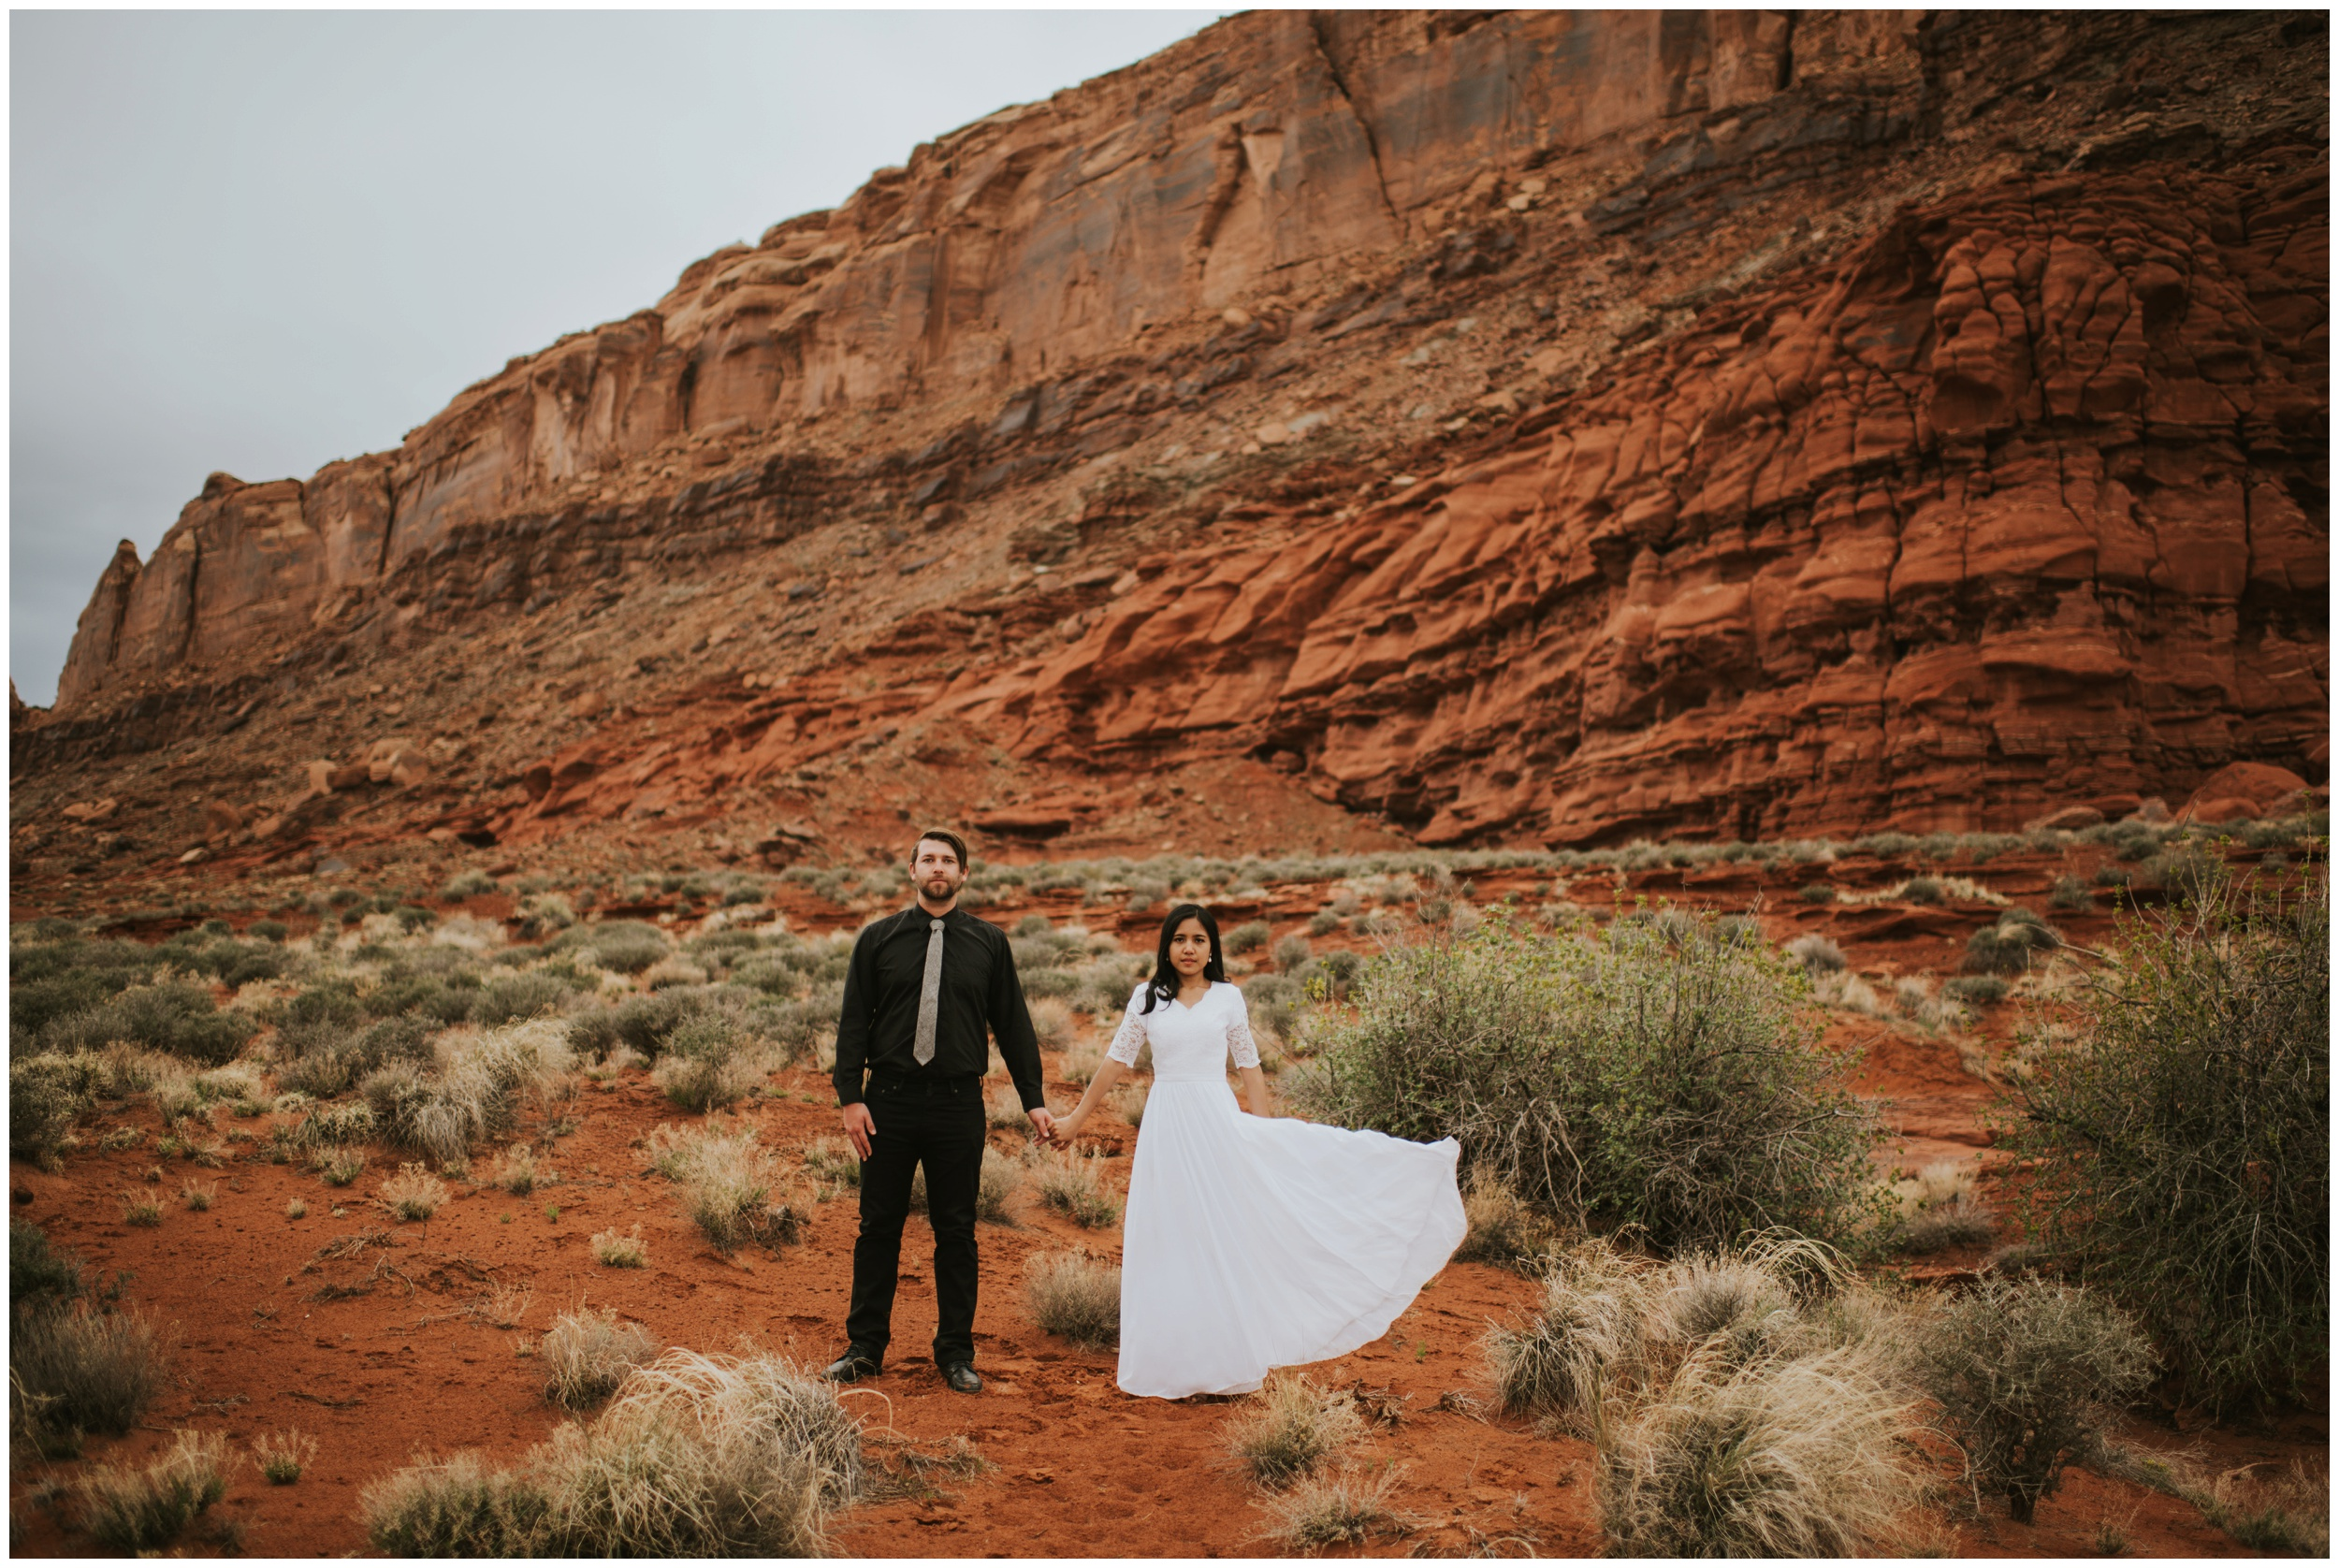 Moody portrait of a bride and groom in a canyon, rich colors  | Moab Utah, Photographer www.riversandroadsphotography.com